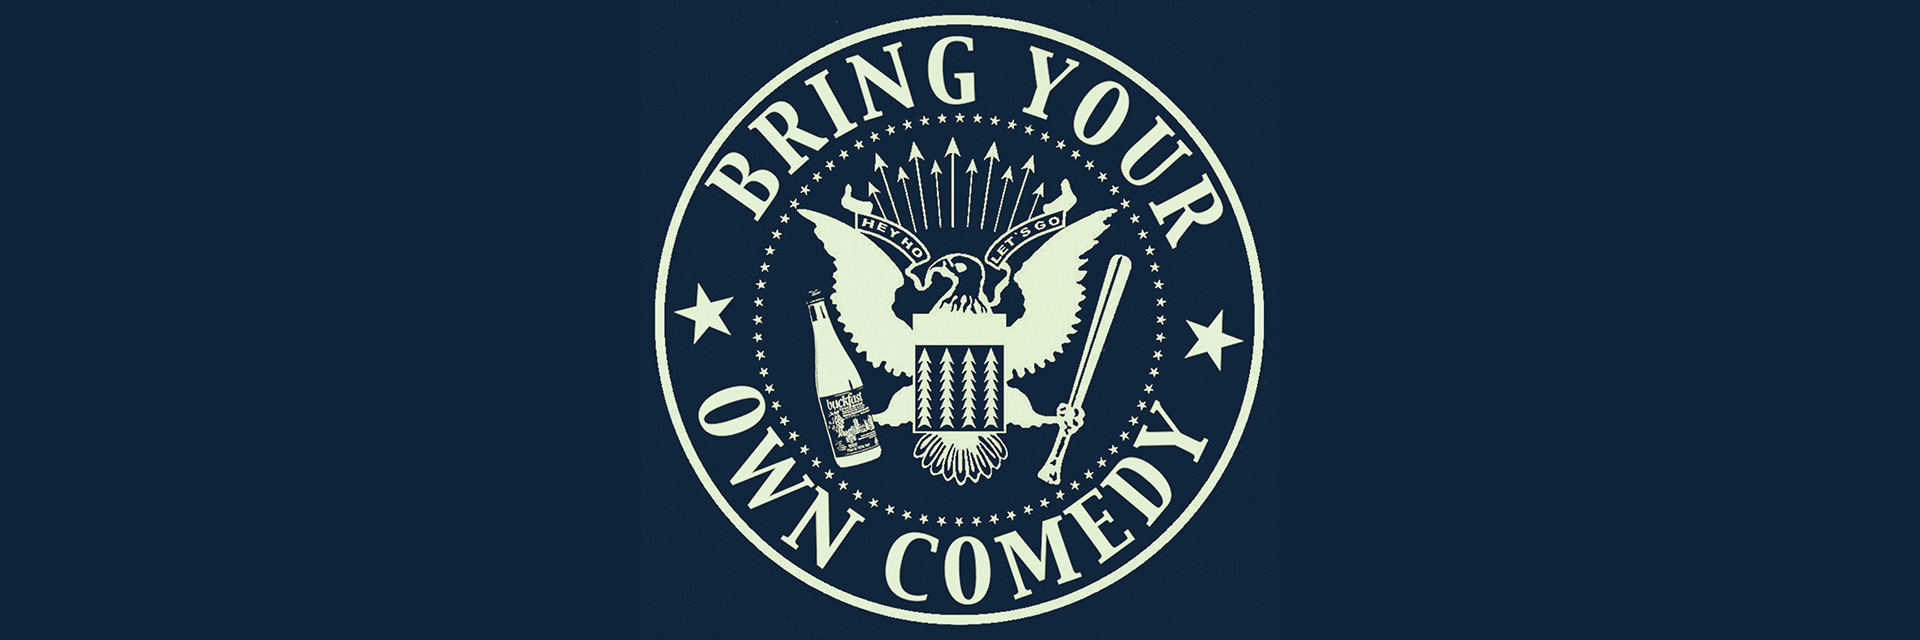 Bring Your Own Comedy – Belfast Comedy Festival 2017